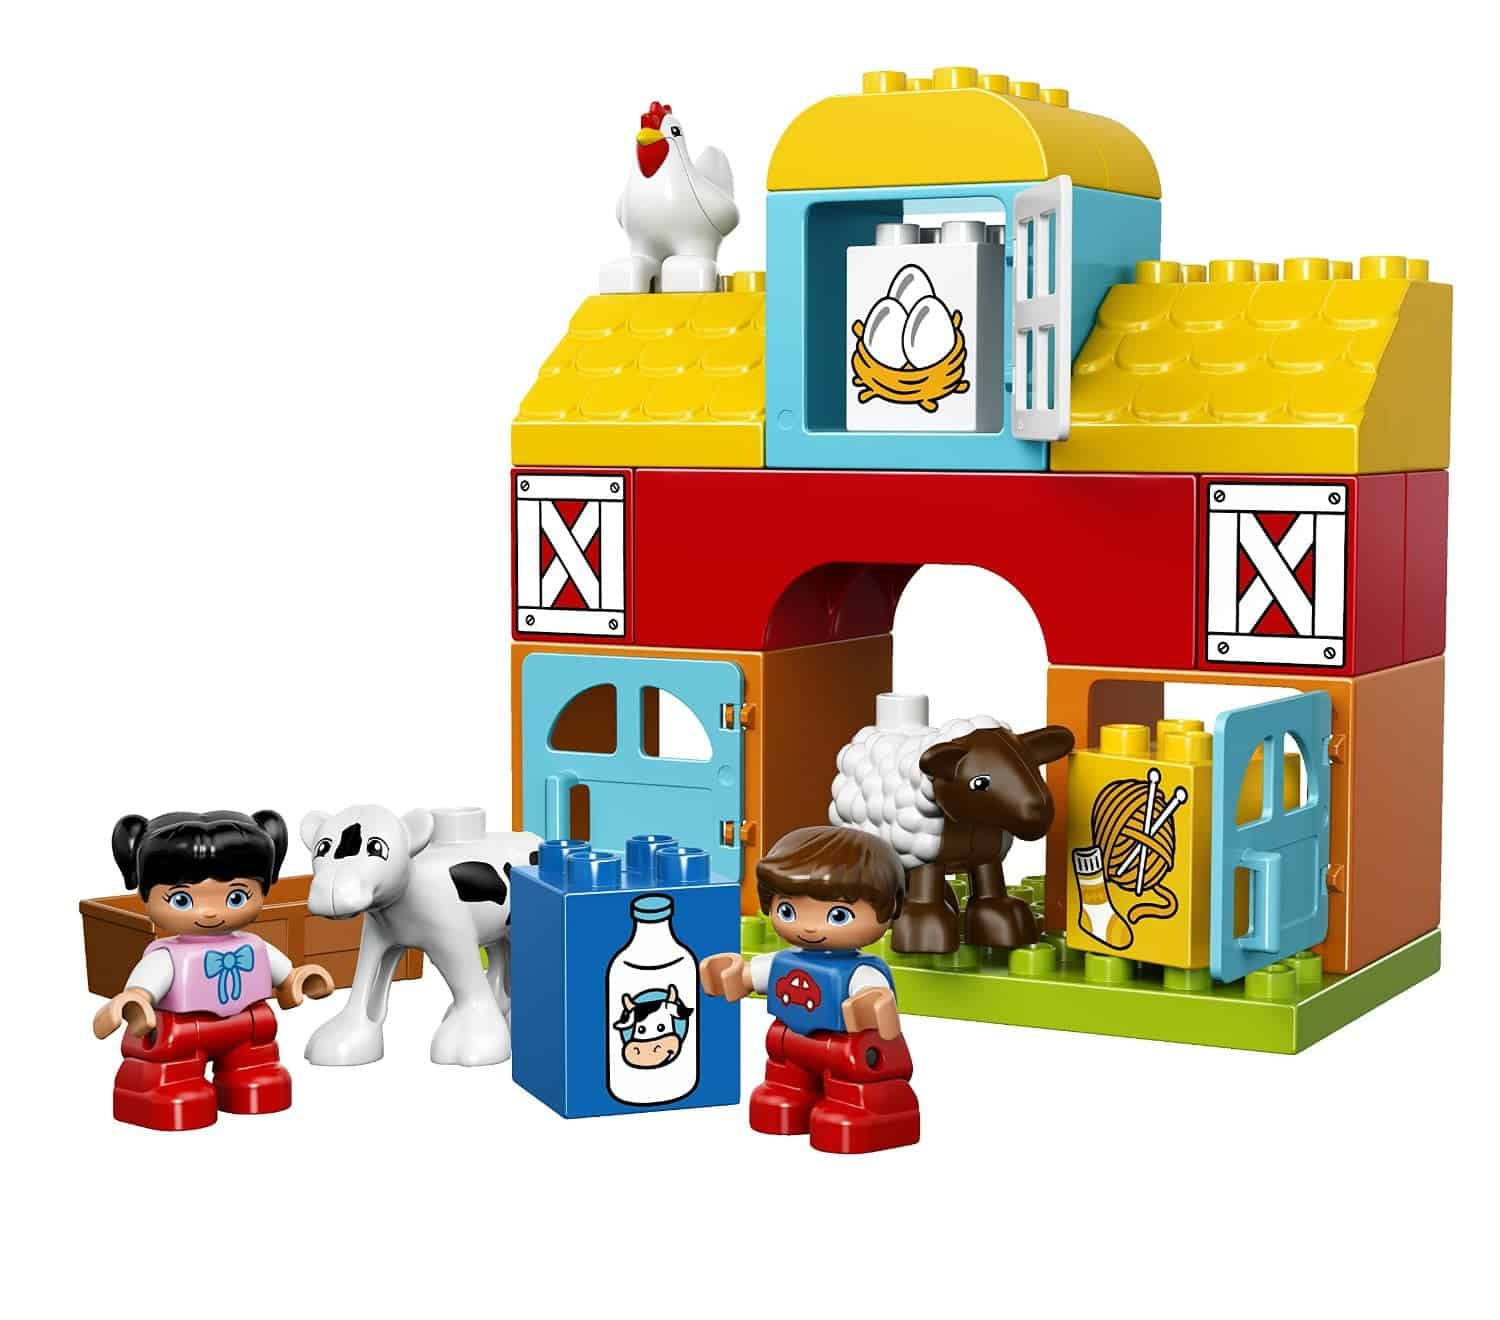 Lego Gift Ideas by Age - Toddler to Twelve Years: My First Farm | www.thepinningmama.com